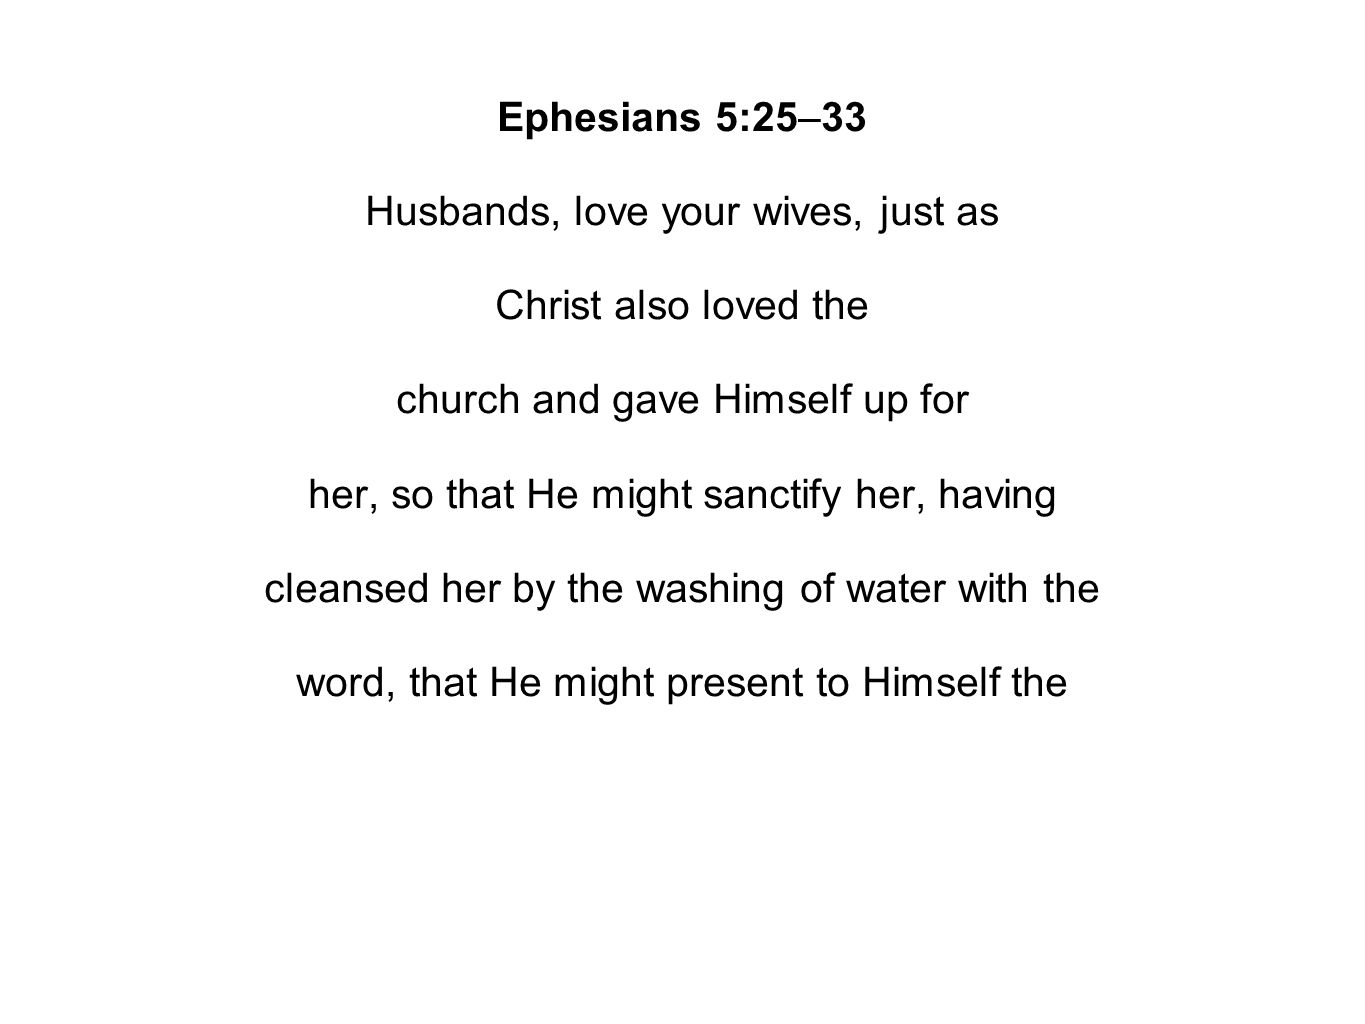 Ephesians 5:25–33 Husbands, love your wives, just as Christ also loved the church and gave Himself up for her, so that He might sanctify her, having cleansed her by the washing of water with the word, that He might present to Himself the church in all her glory, having no spot or